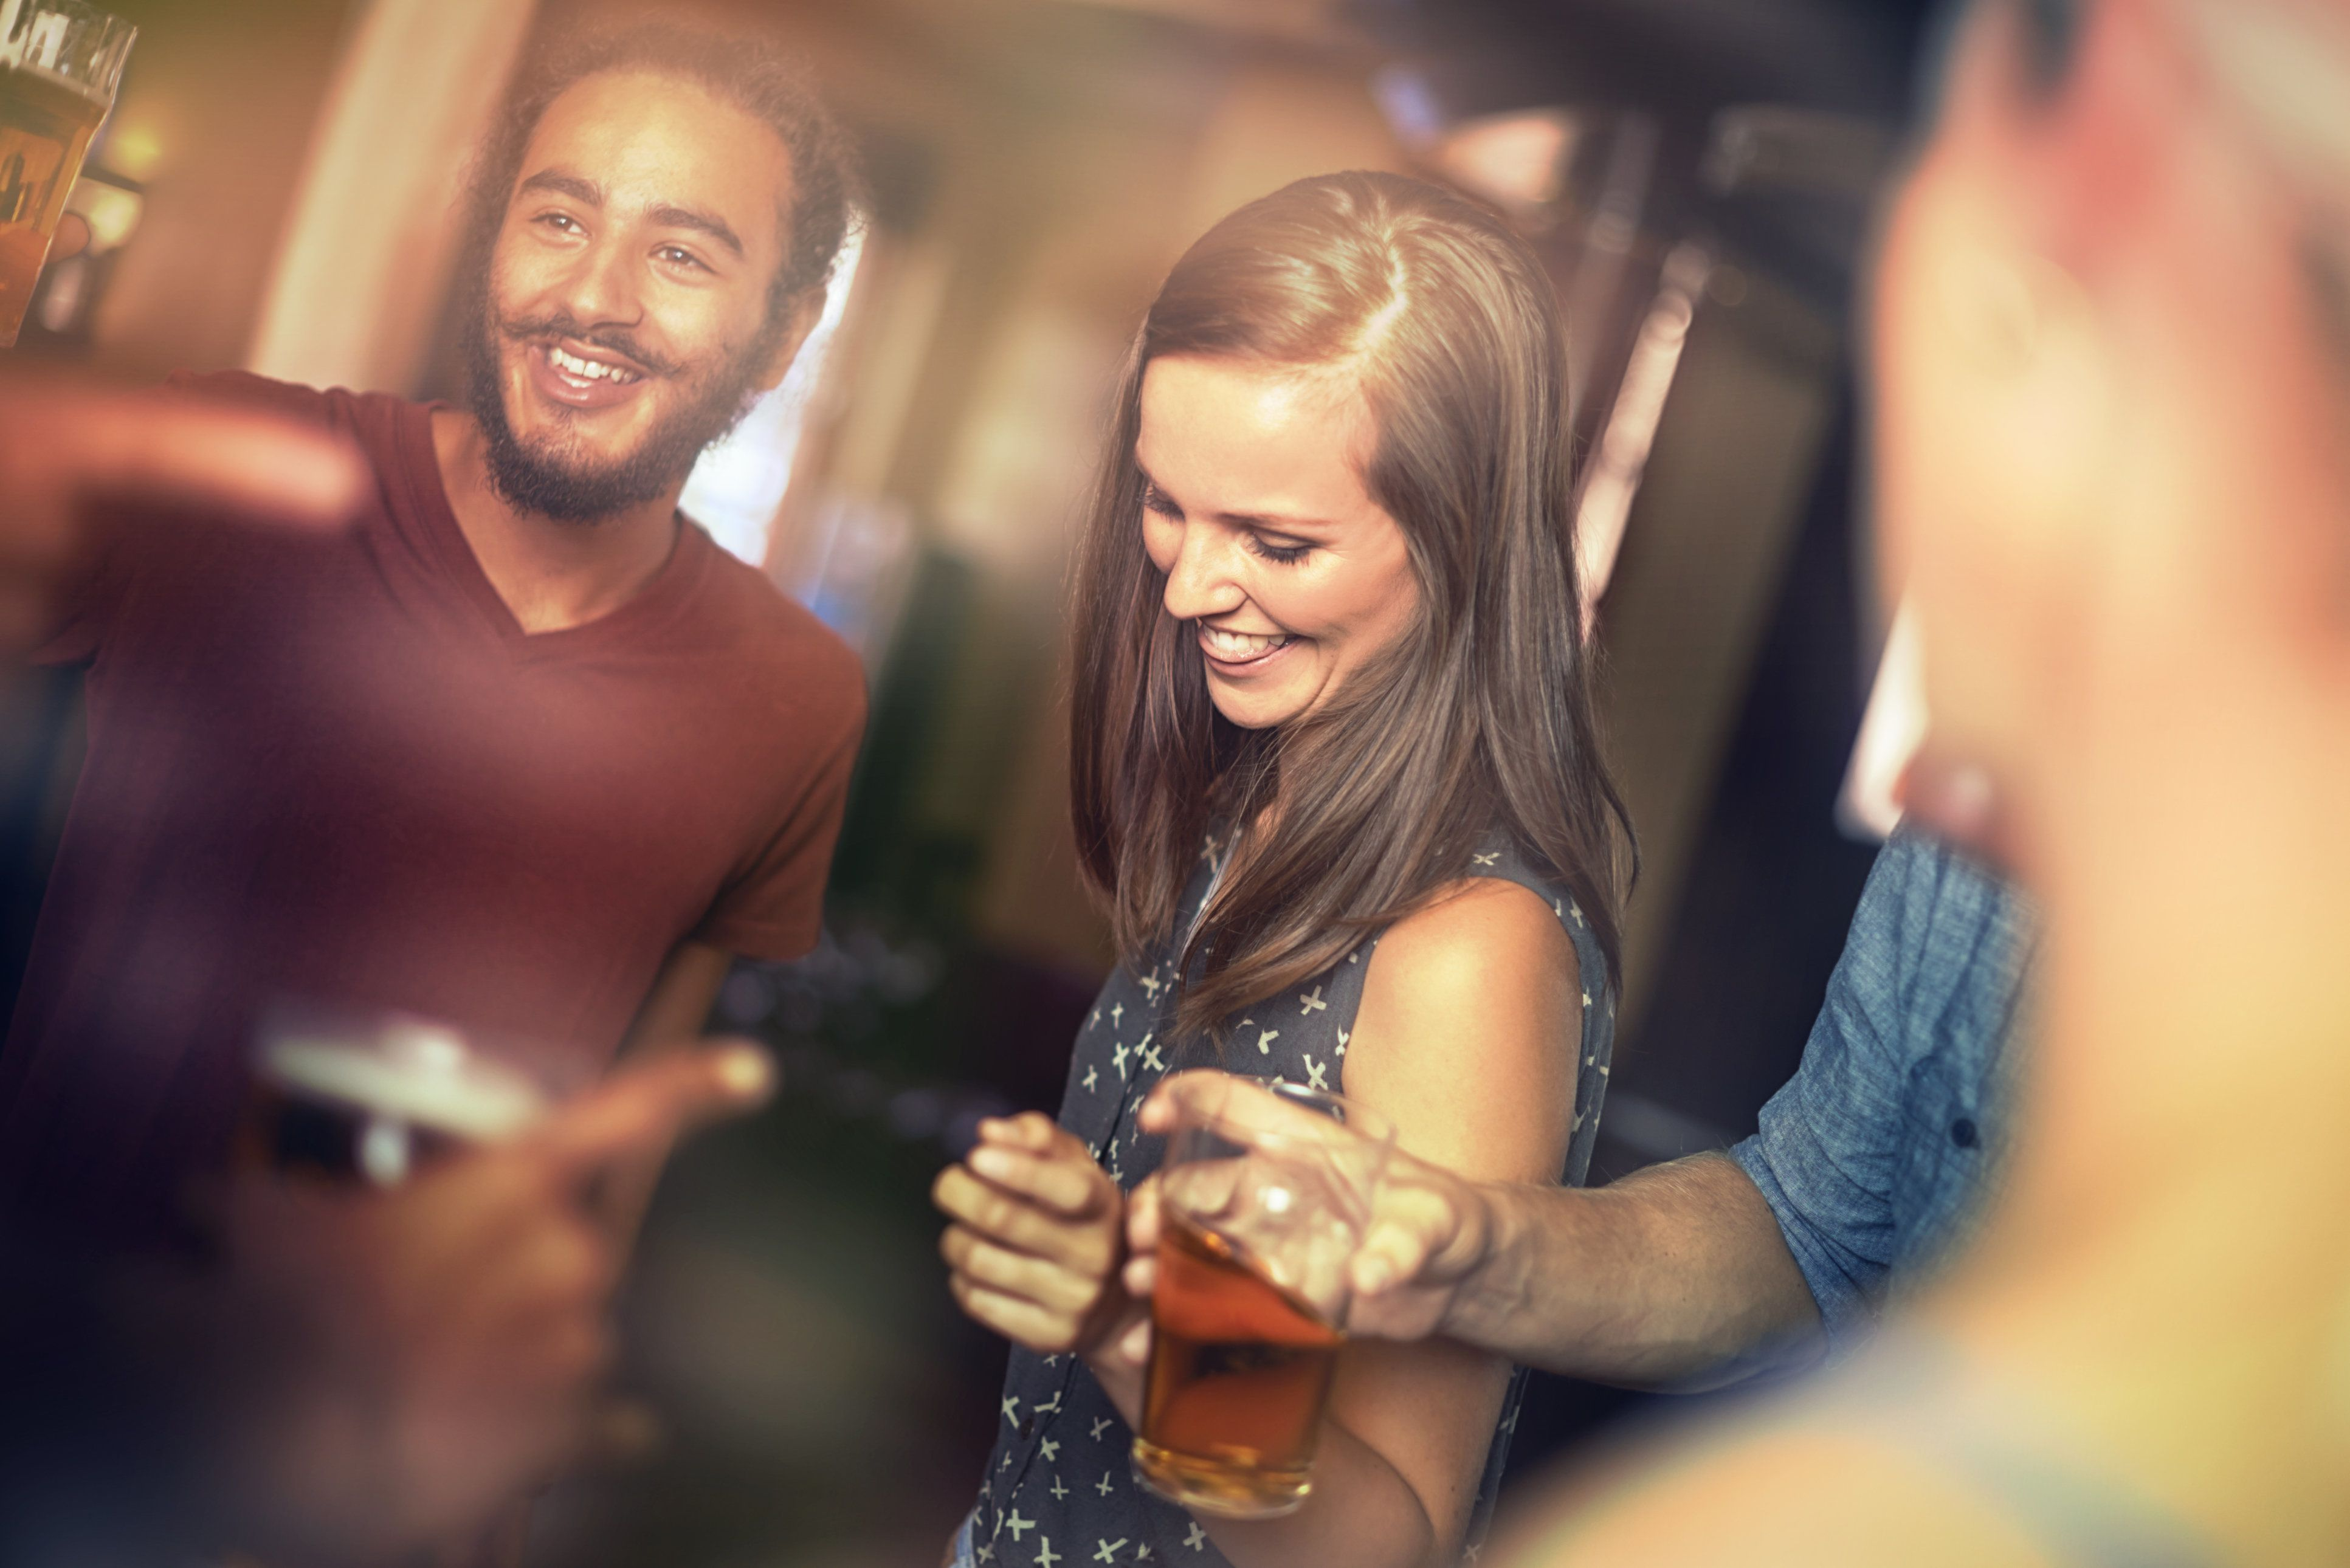 Drinking Beer Makes Us More Sociable And Less Shy About Sex, Study